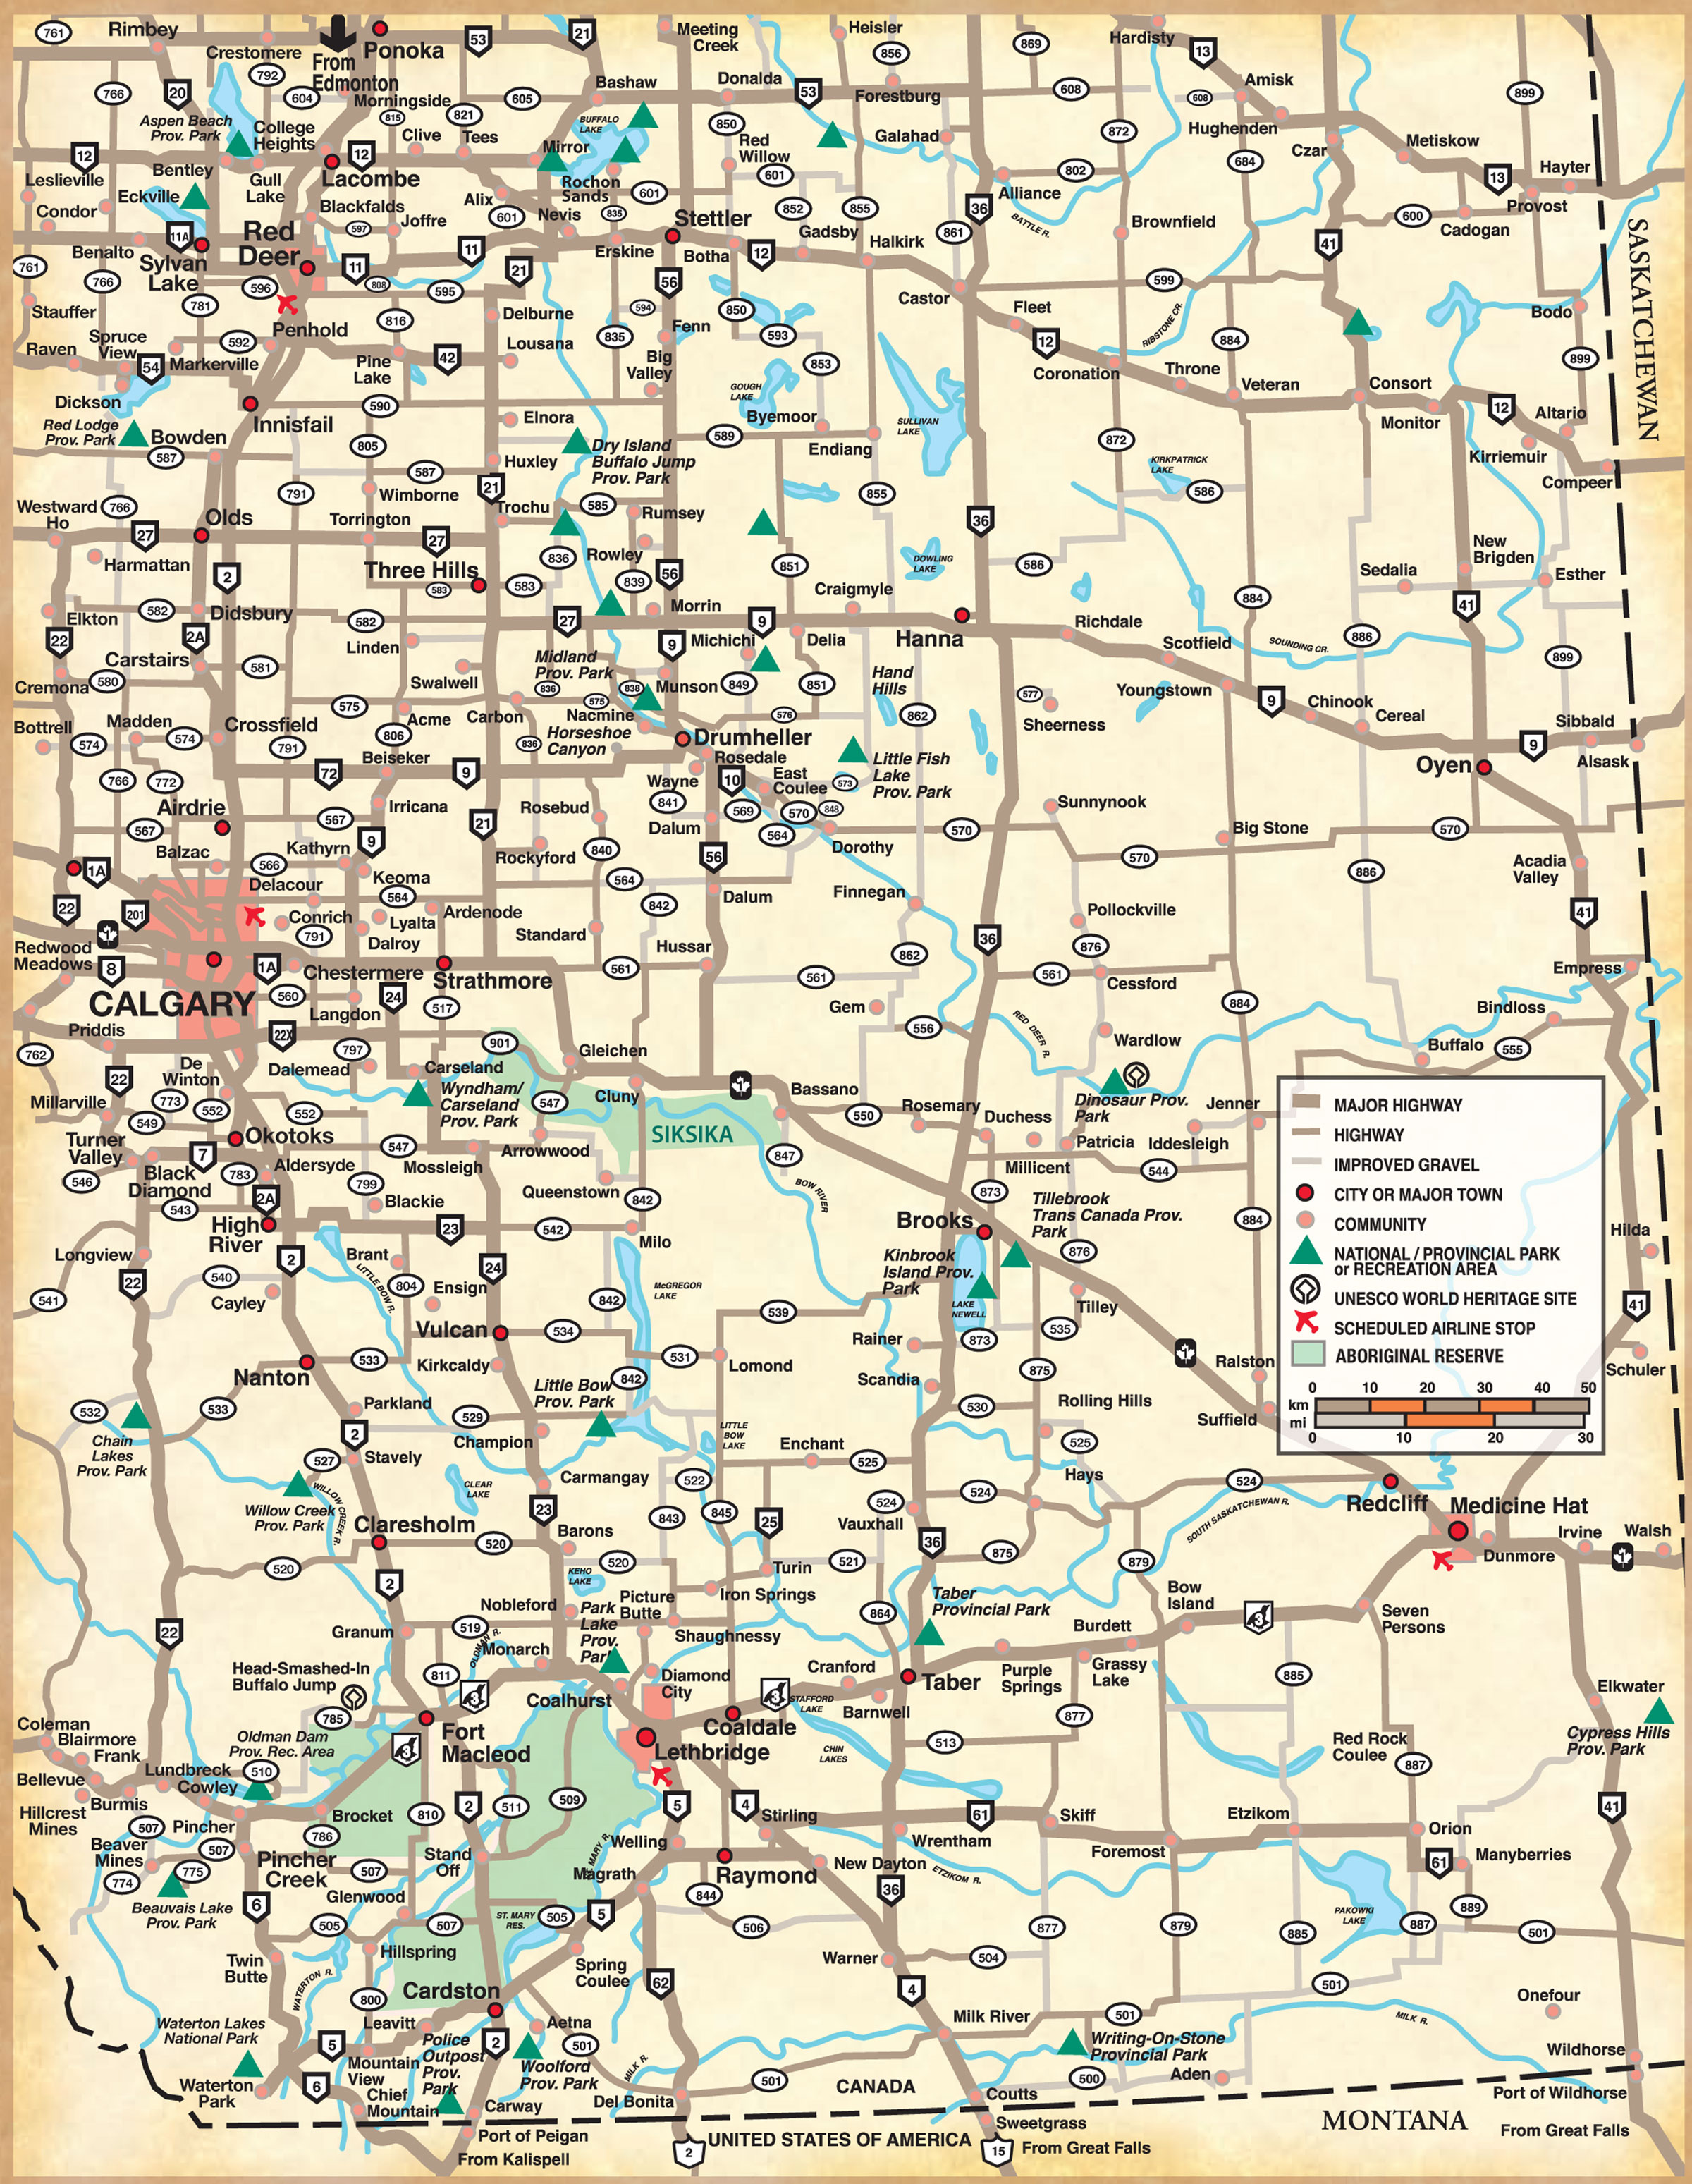 Mappery comsouthern alberta map countess canada • mappery